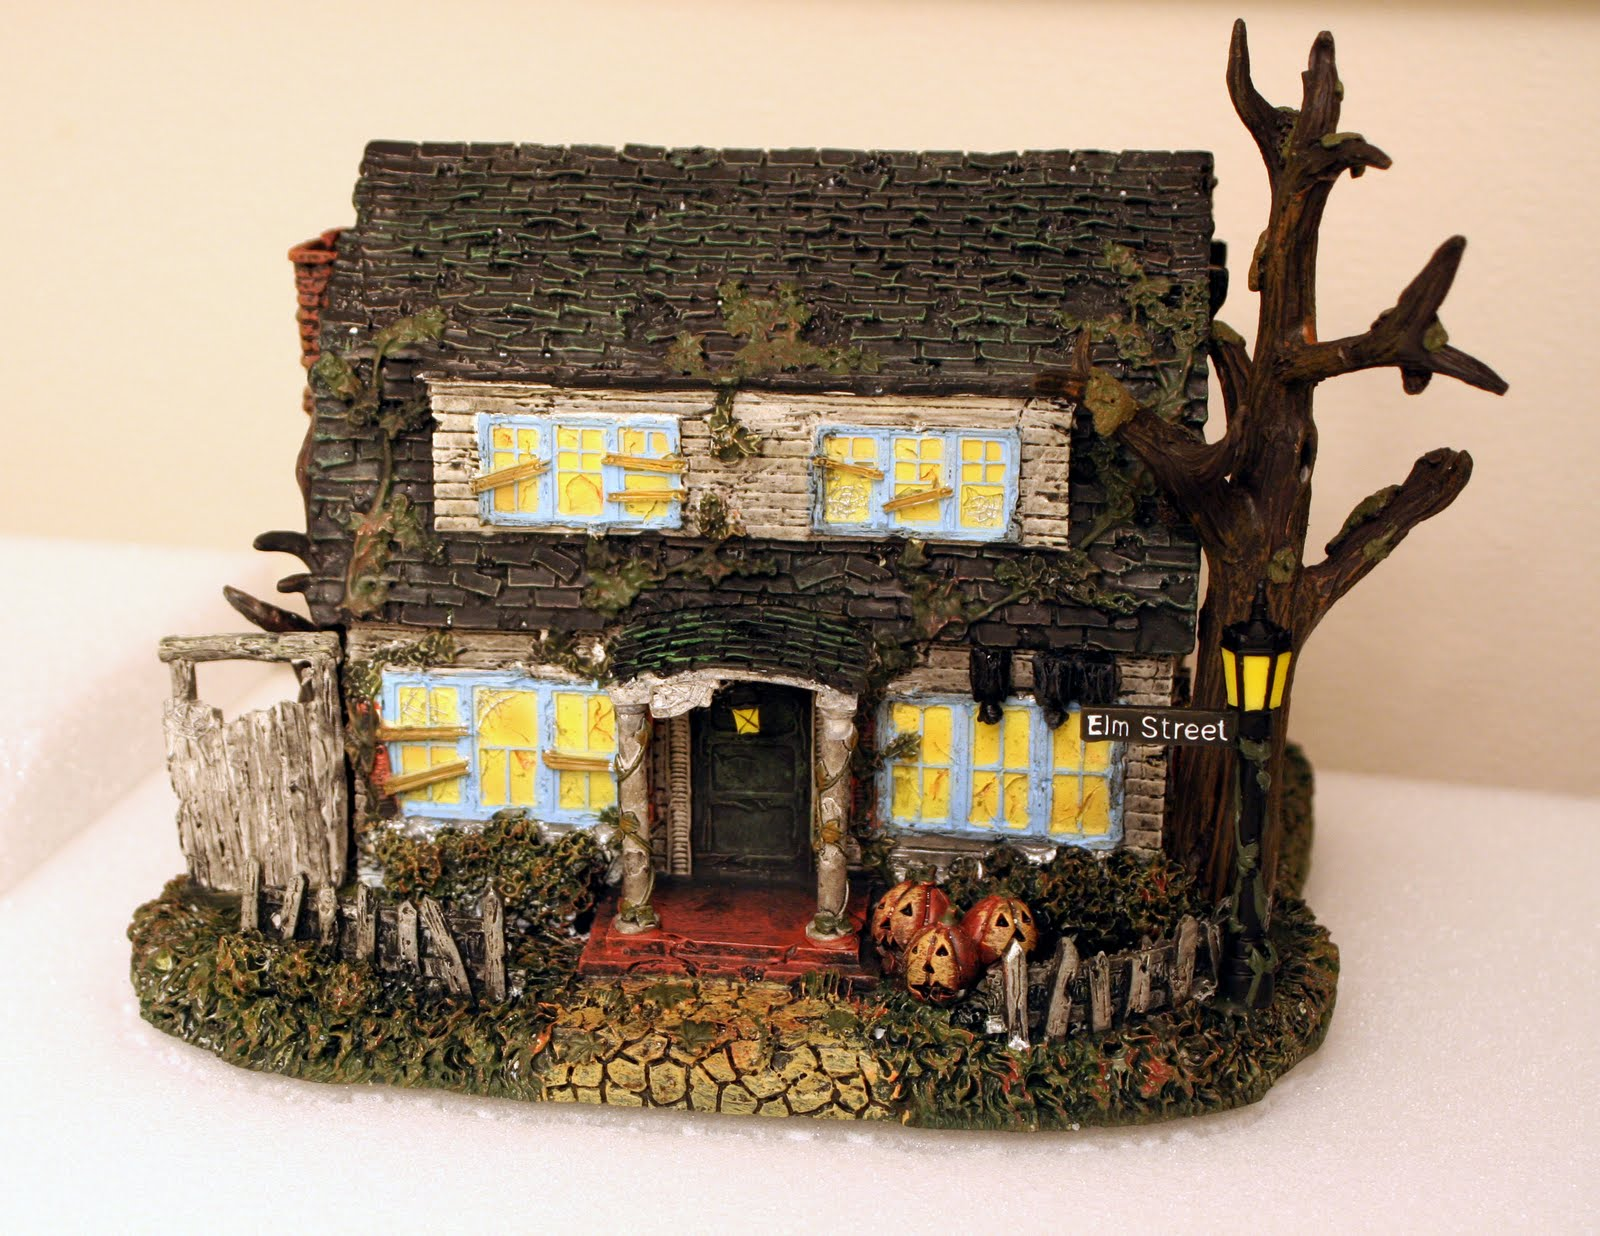 dirt cheap decor!: halloween village platform